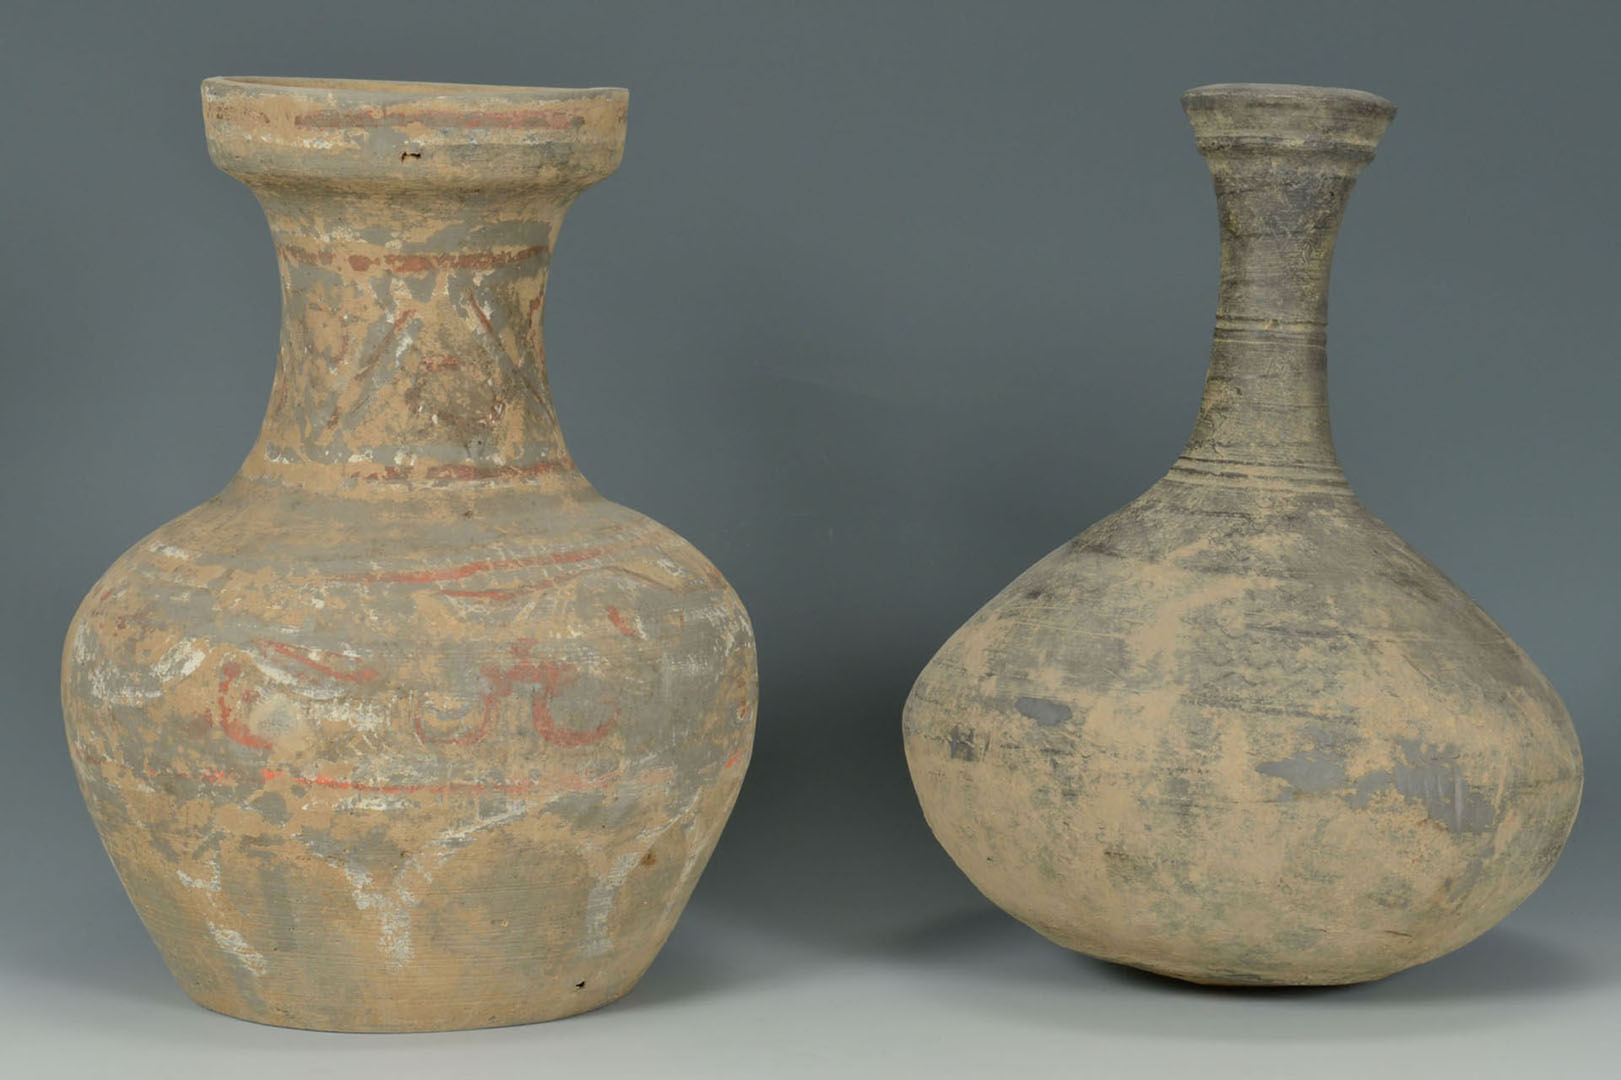 Lot 2872284: 2 Chinese Han Dynasty Pottery Wine Vessels